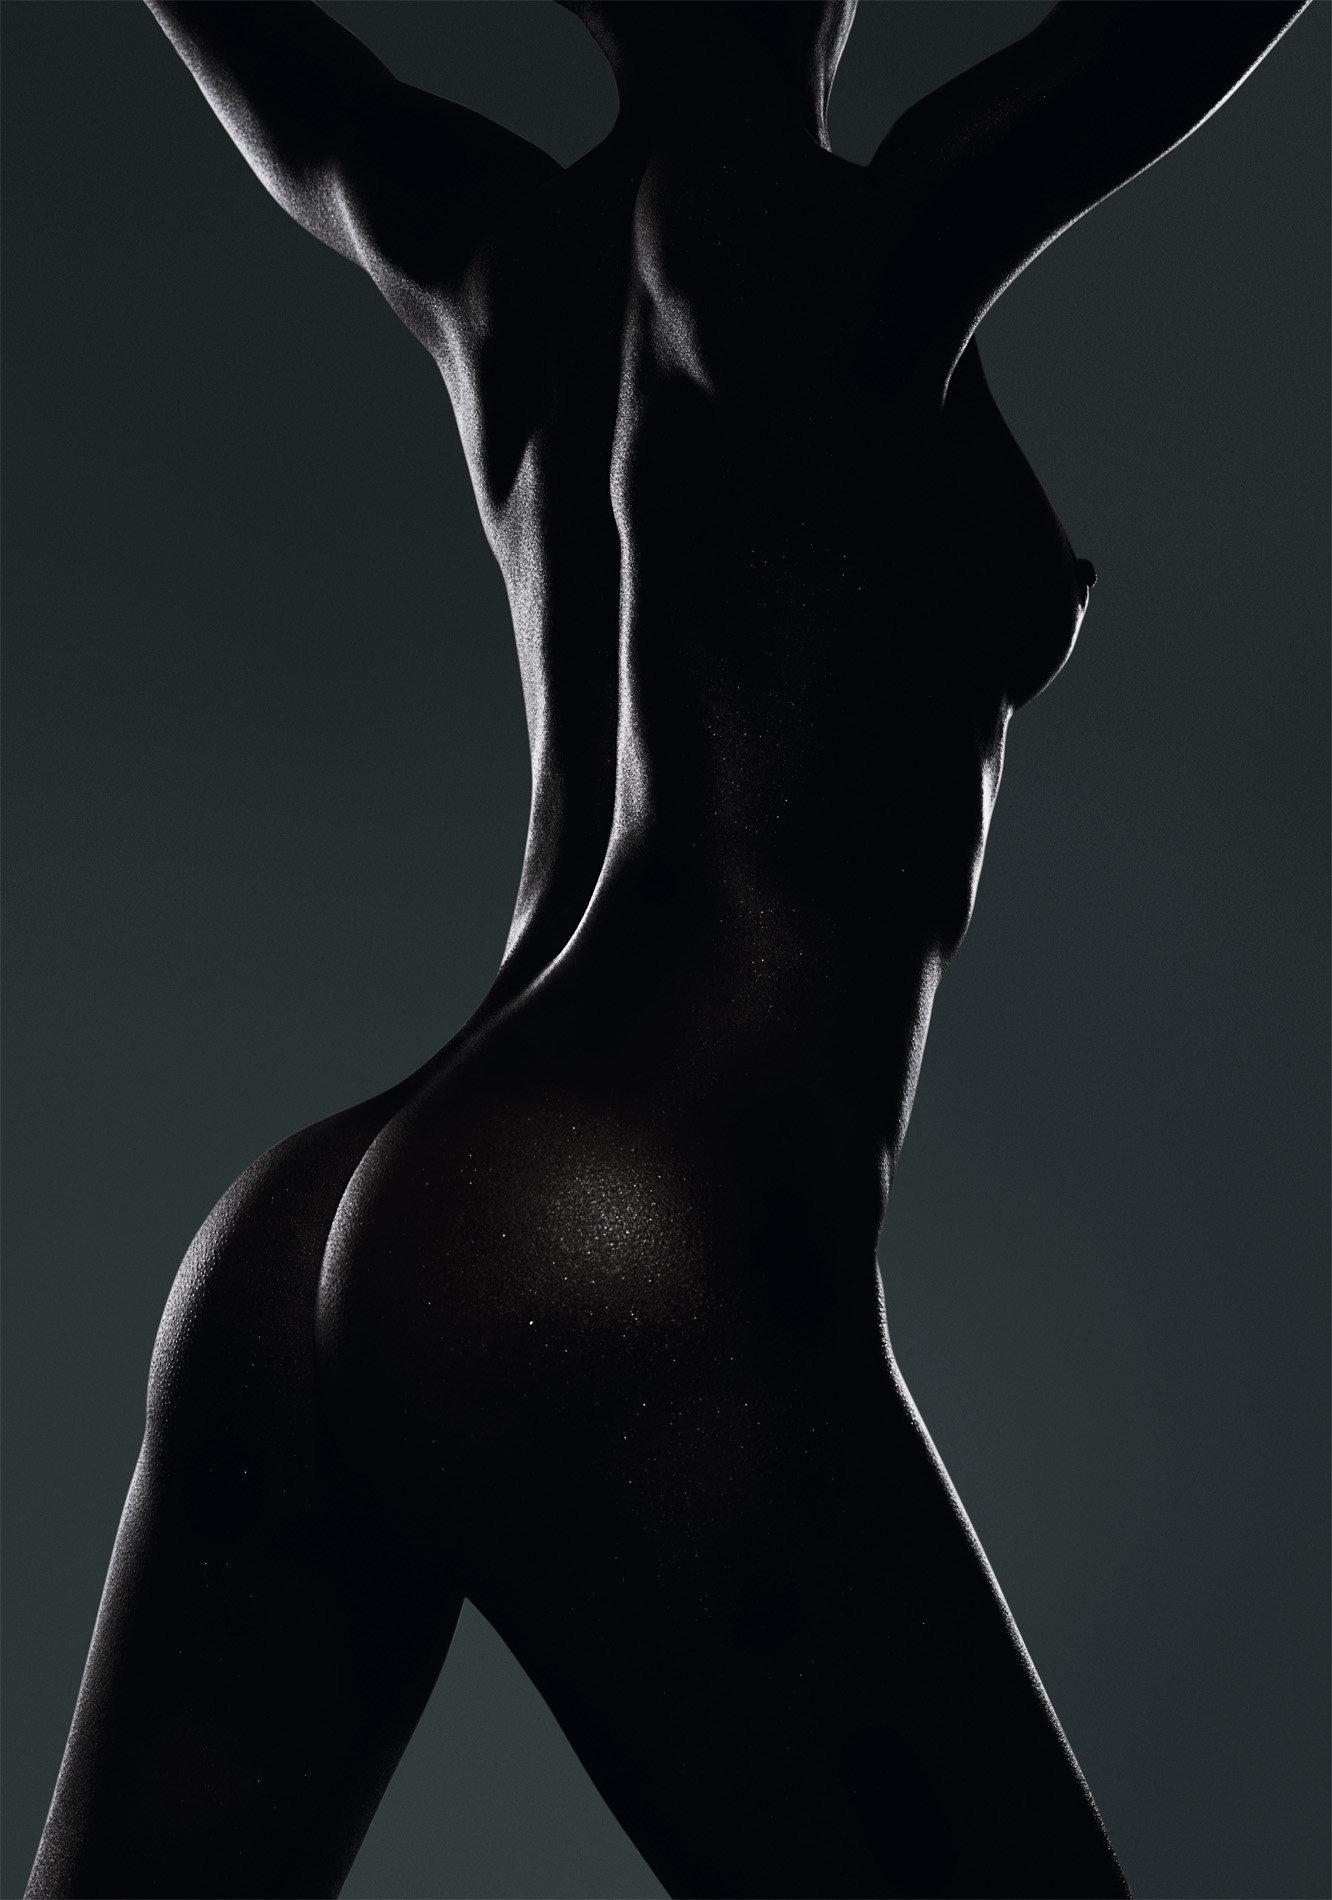 Dark nude female torso in silhouette